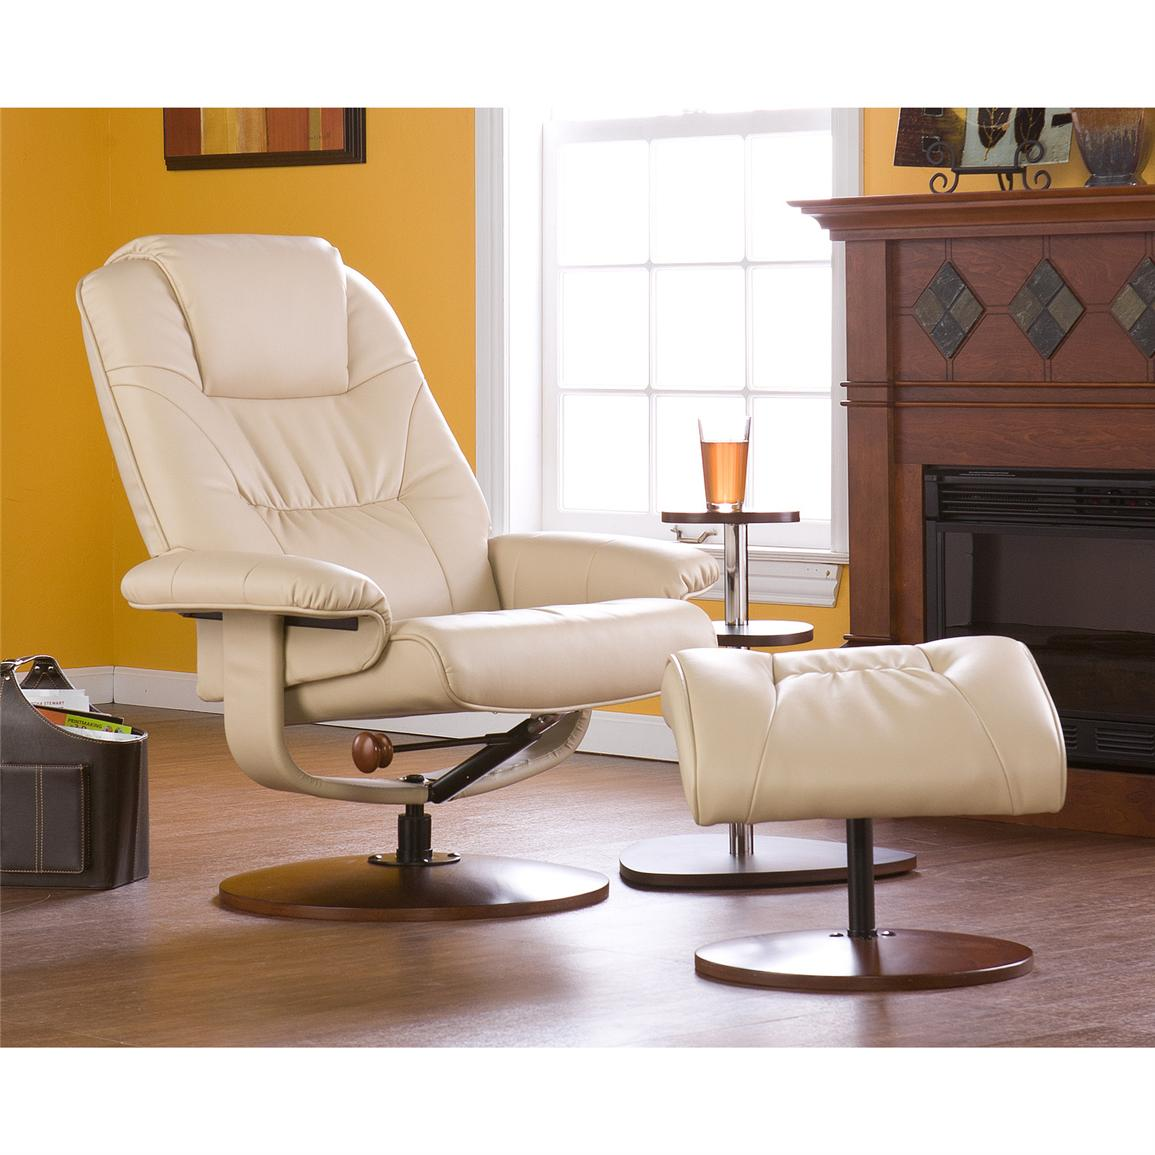 Parrish Leather Recliner and Ottoman, Taupe